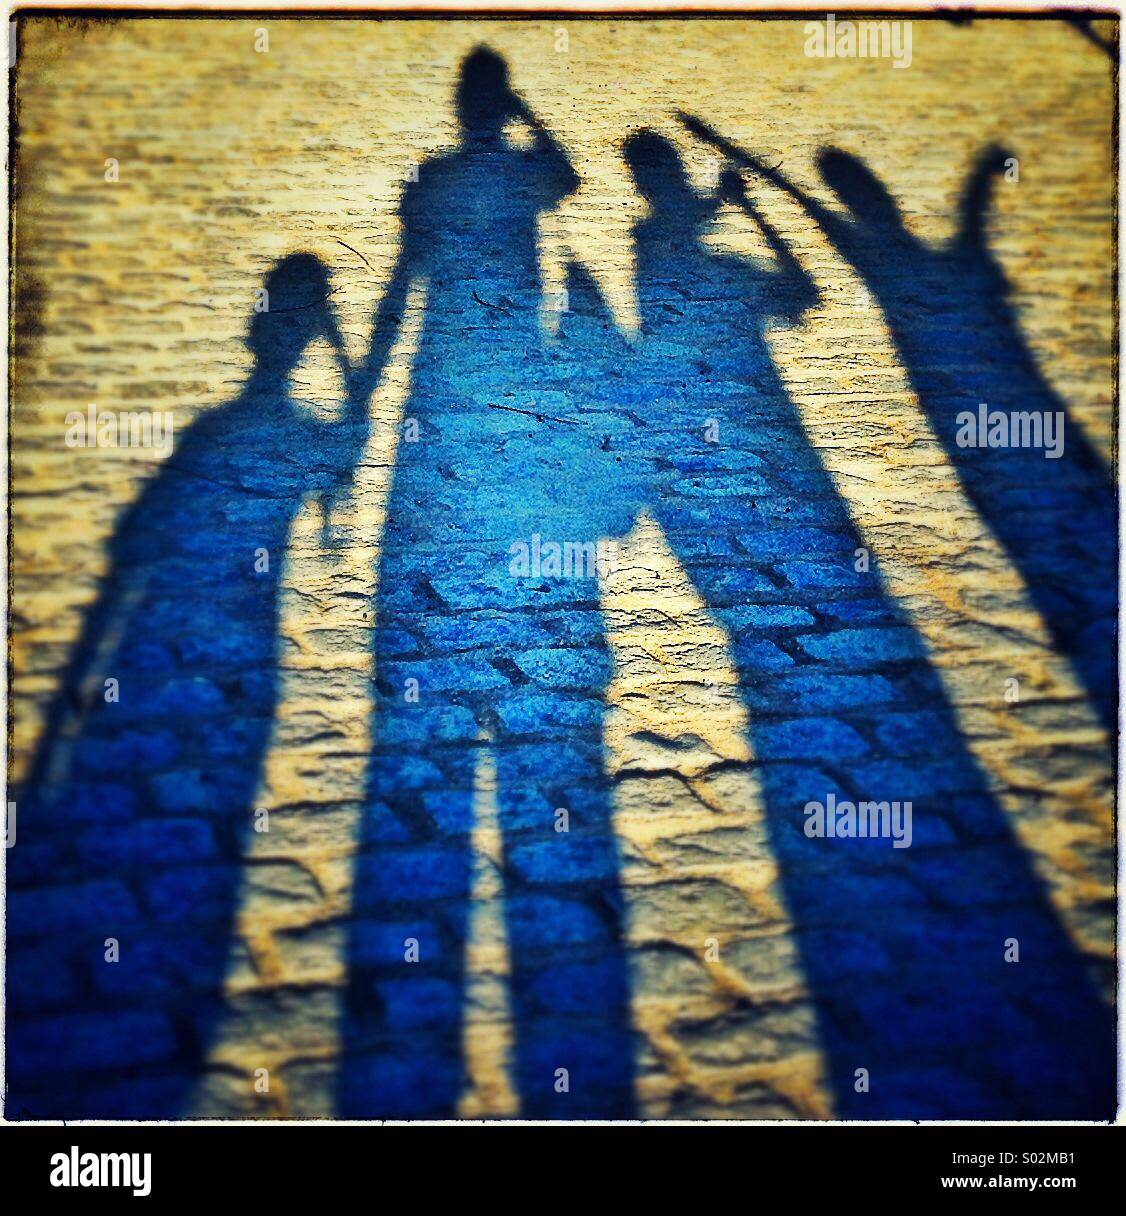 Shadow_of_a_happy_family-S02MB1.jpg